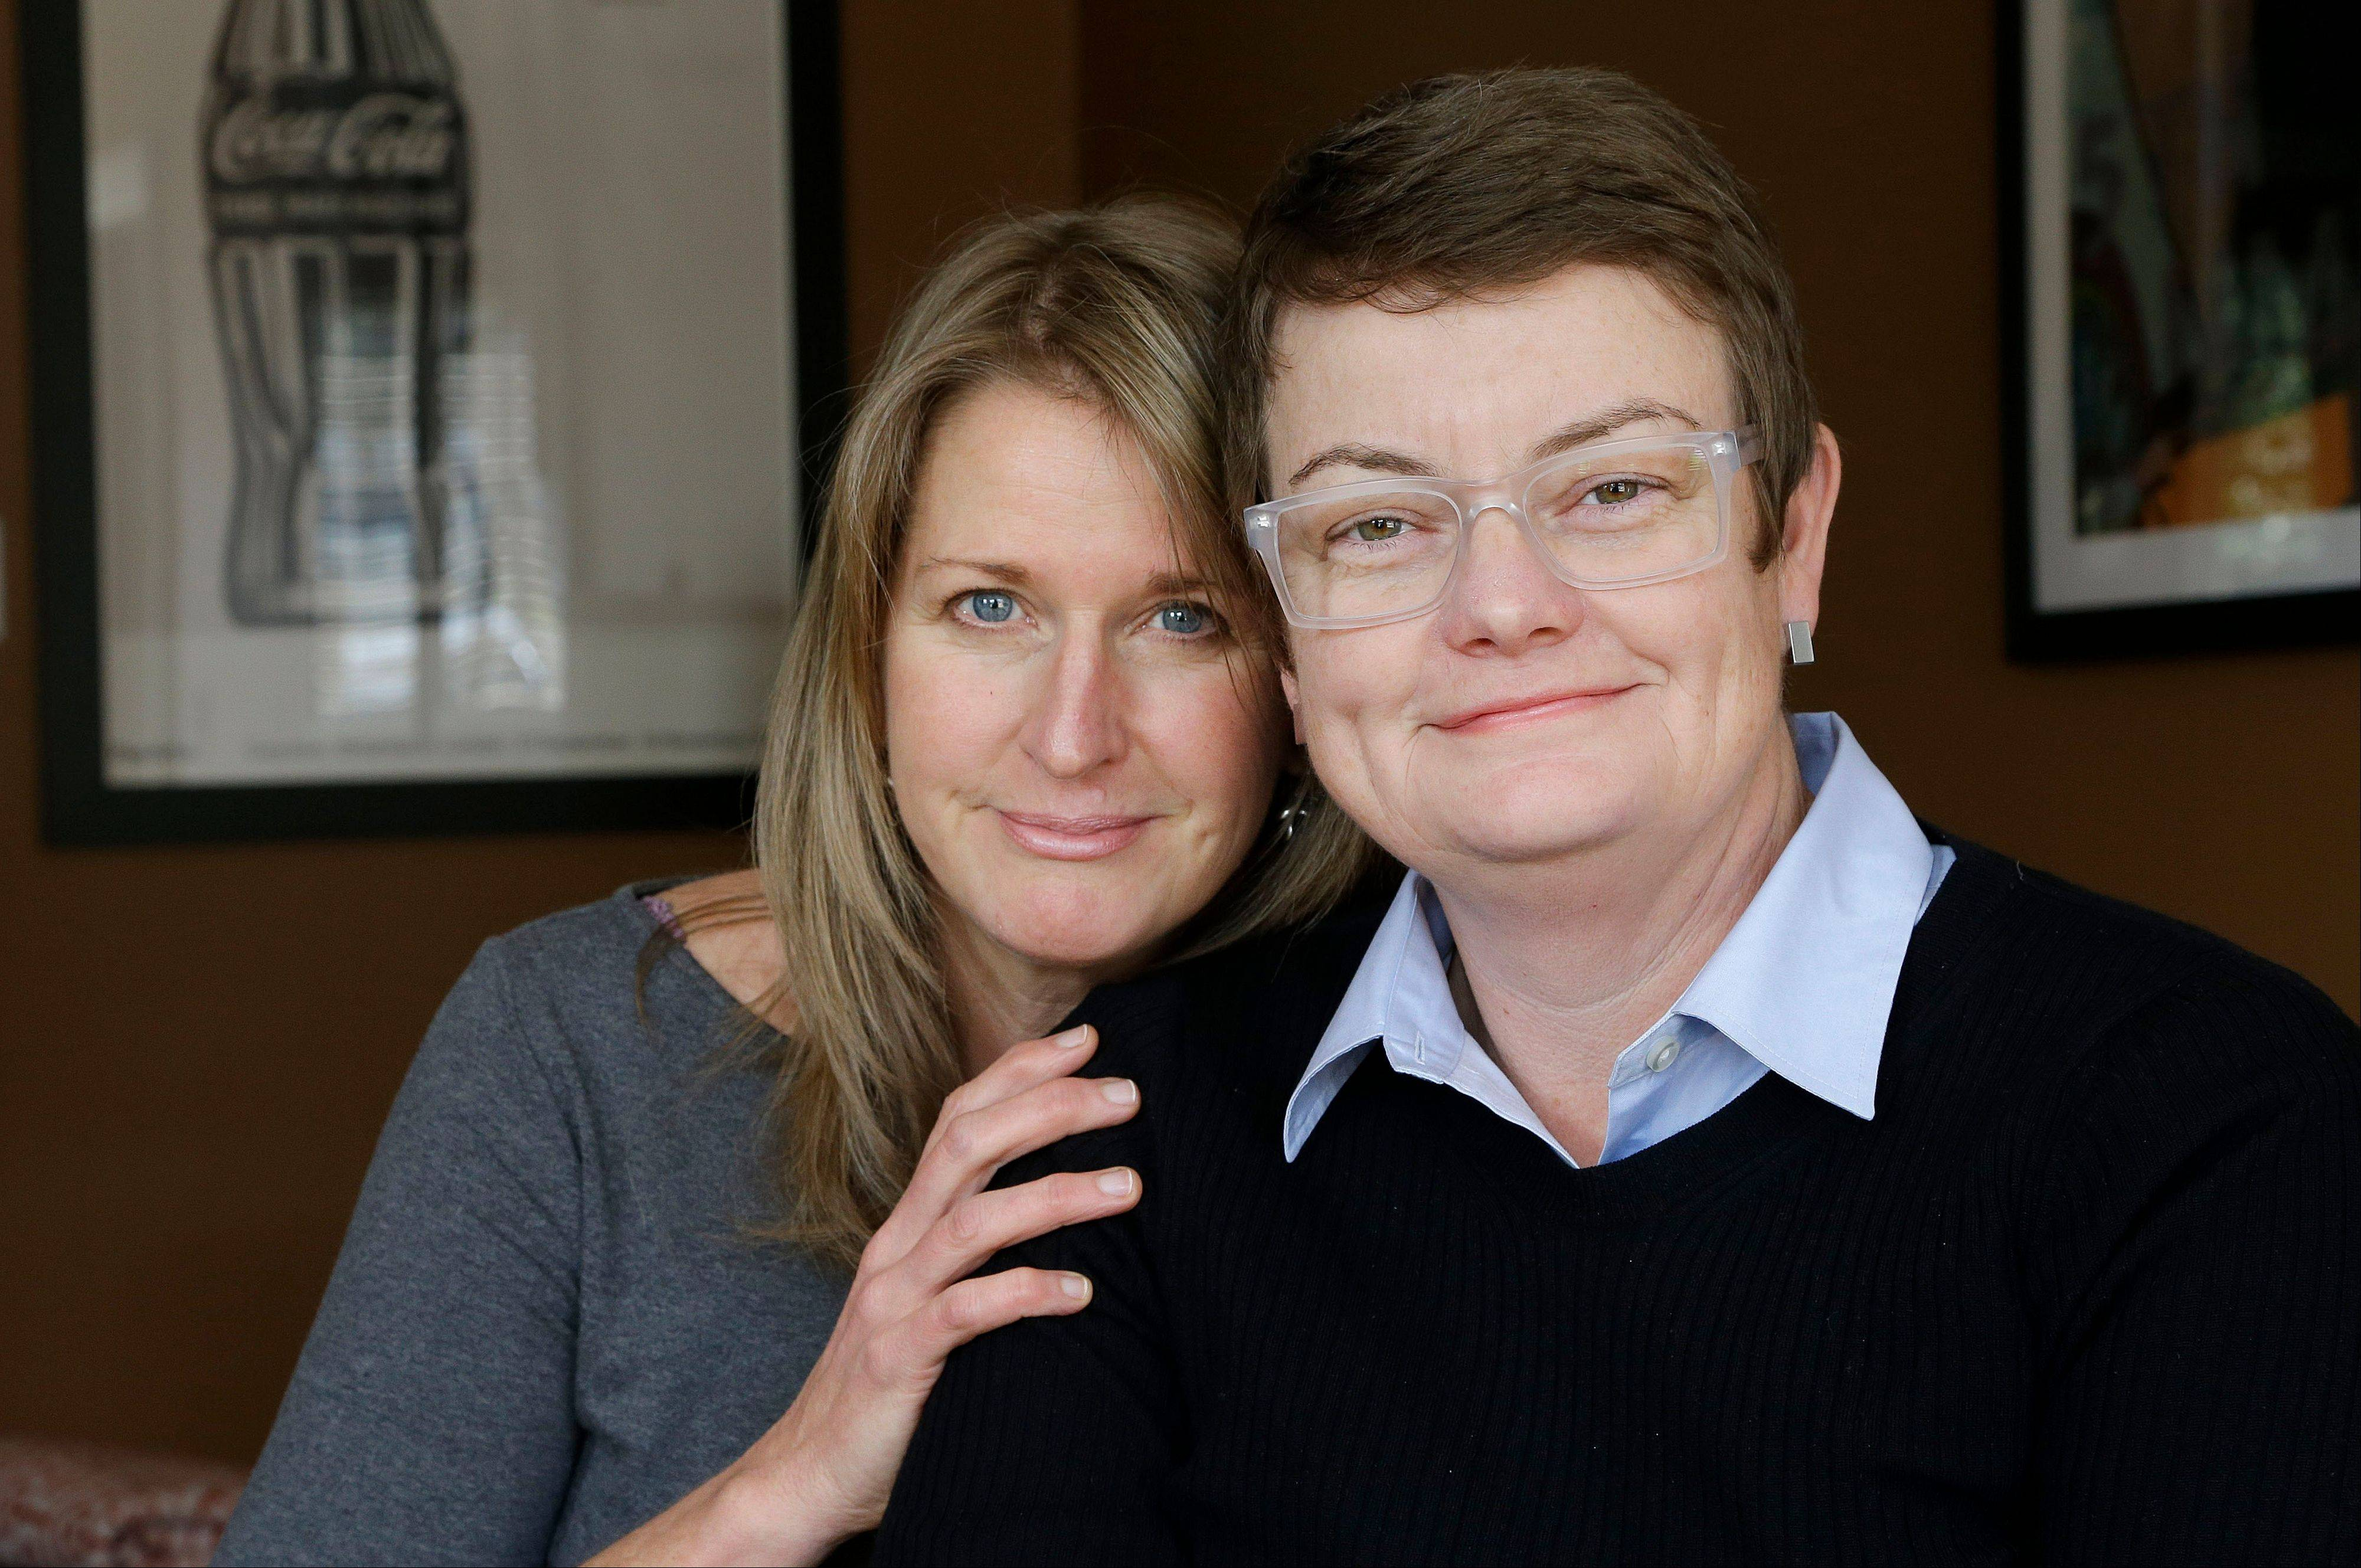 Sandy Stier, left, and Kris Perry, the couple at the center of the Supreme Court�s consideration of gay marriage, are seen at their home in Berkeley, Calif.